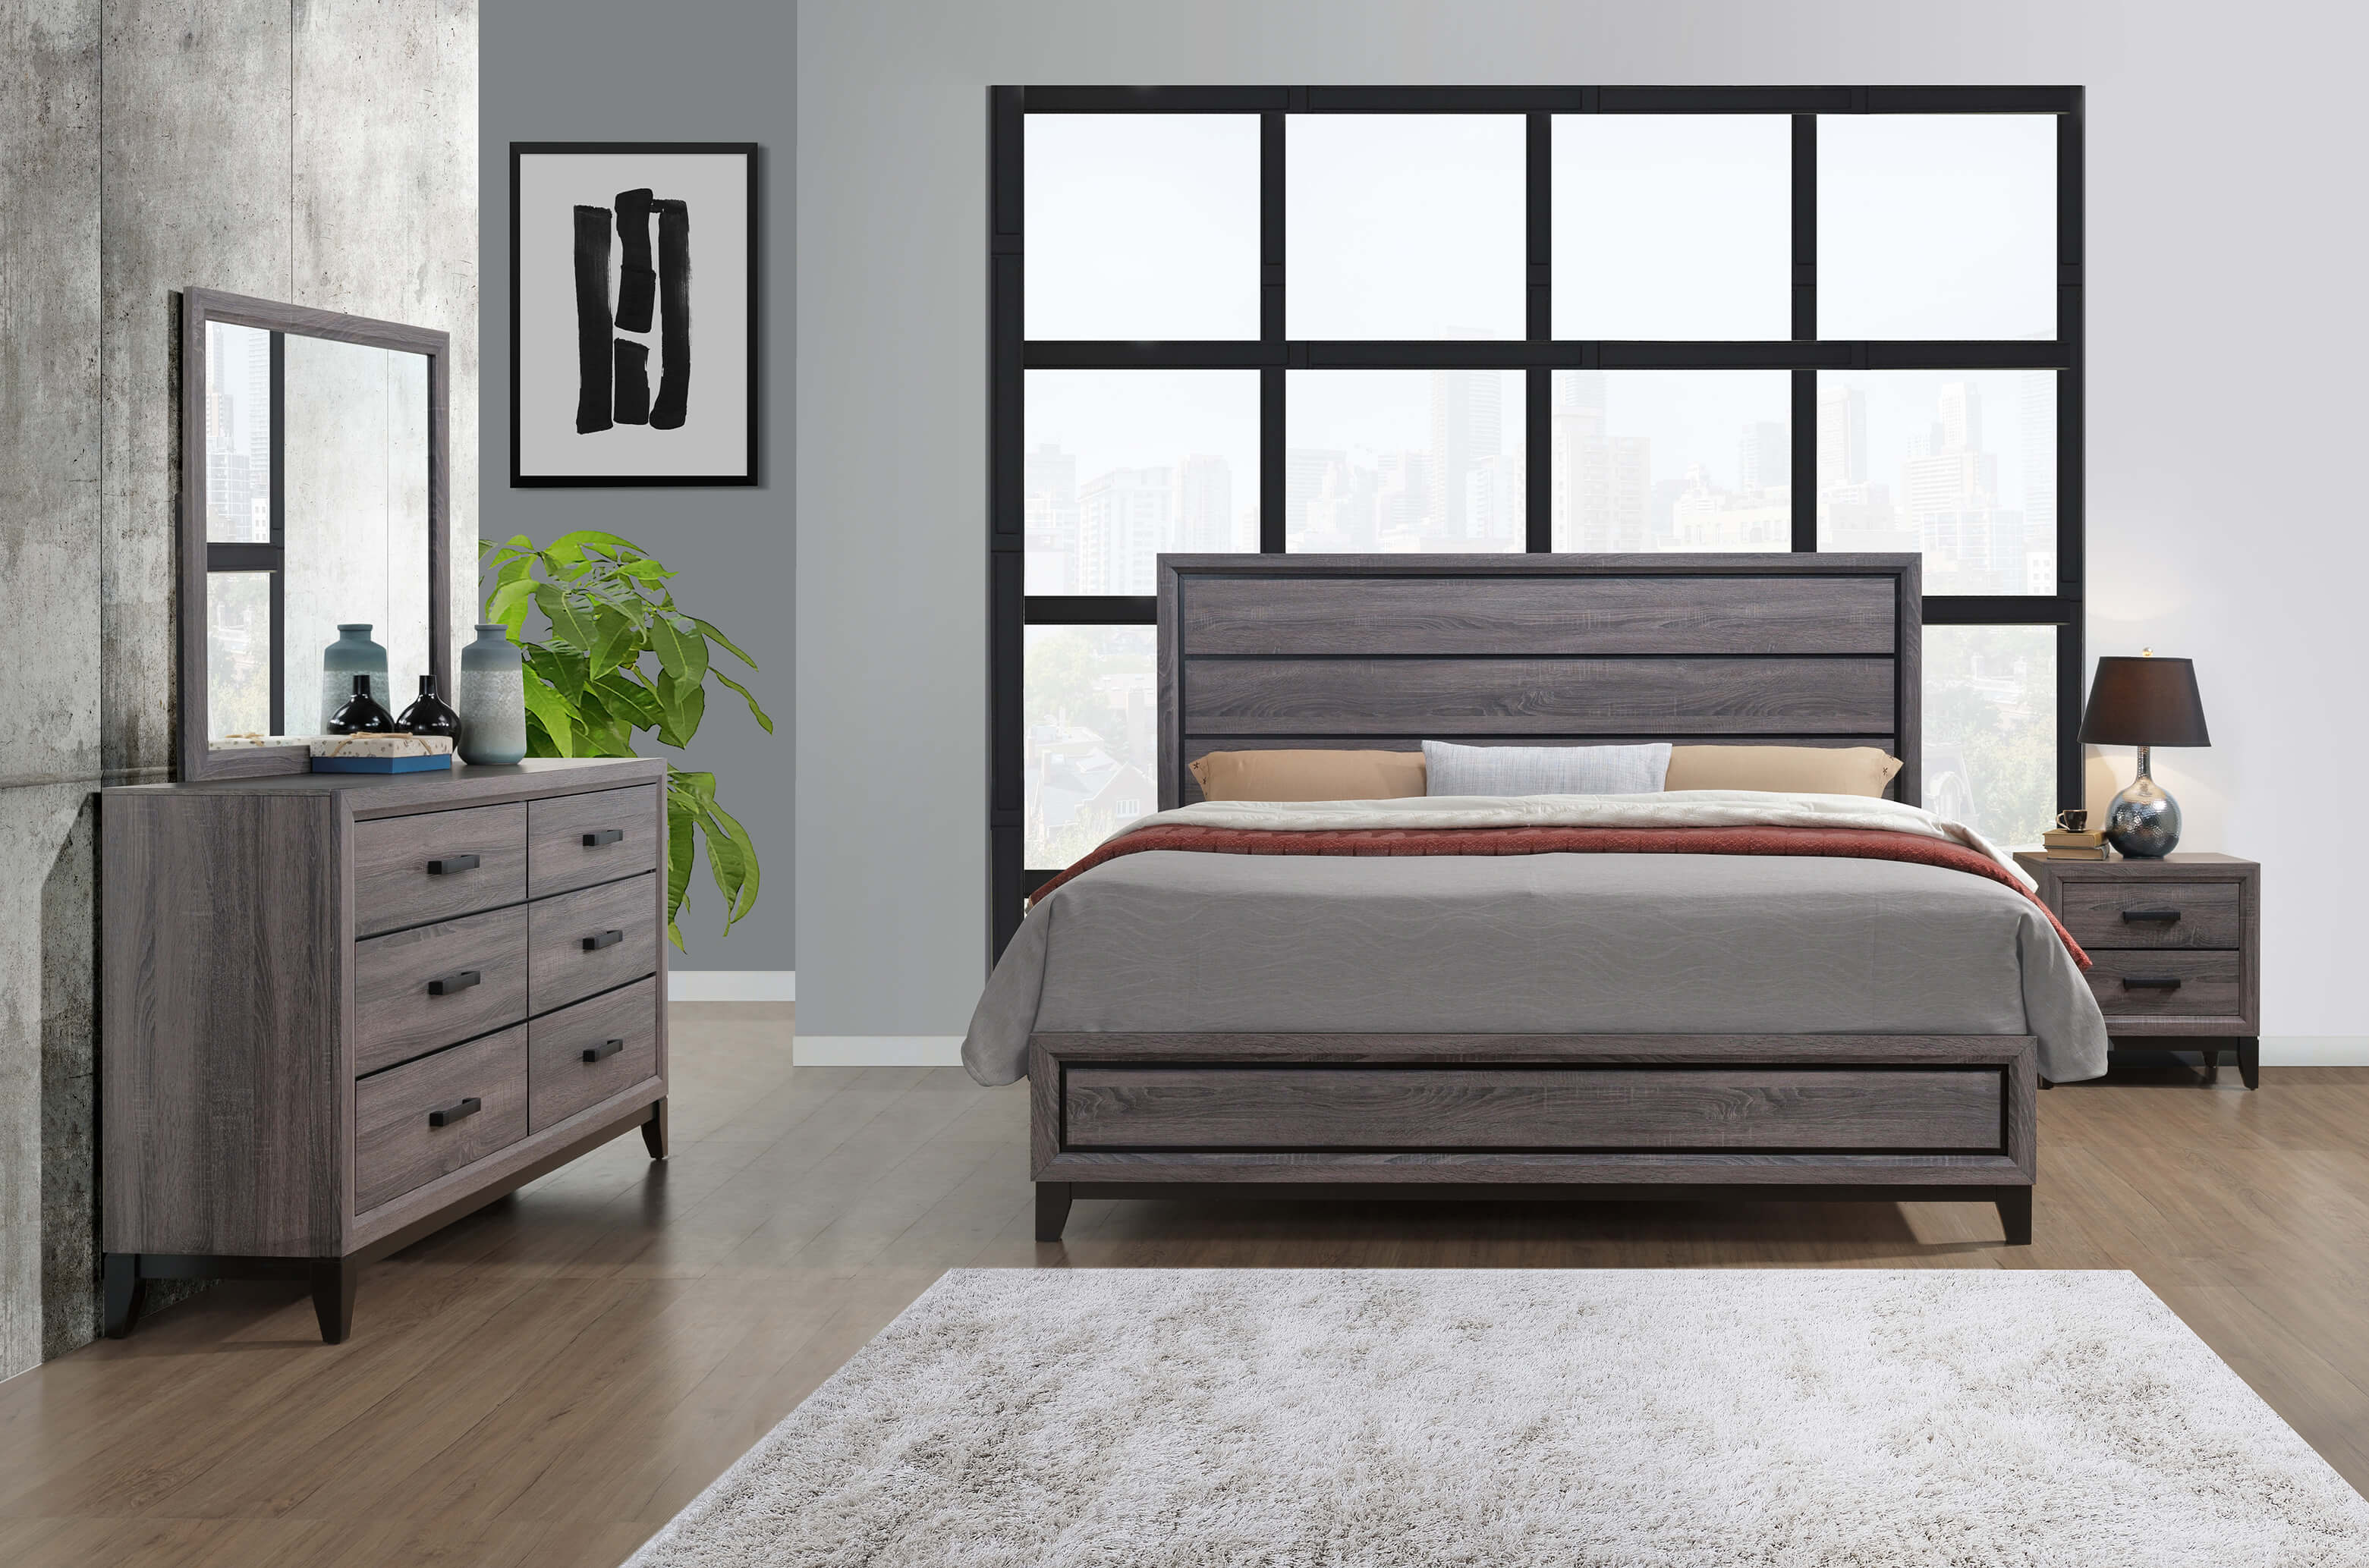 kate beech wood grey bedroom set - Grey Bedroom Set